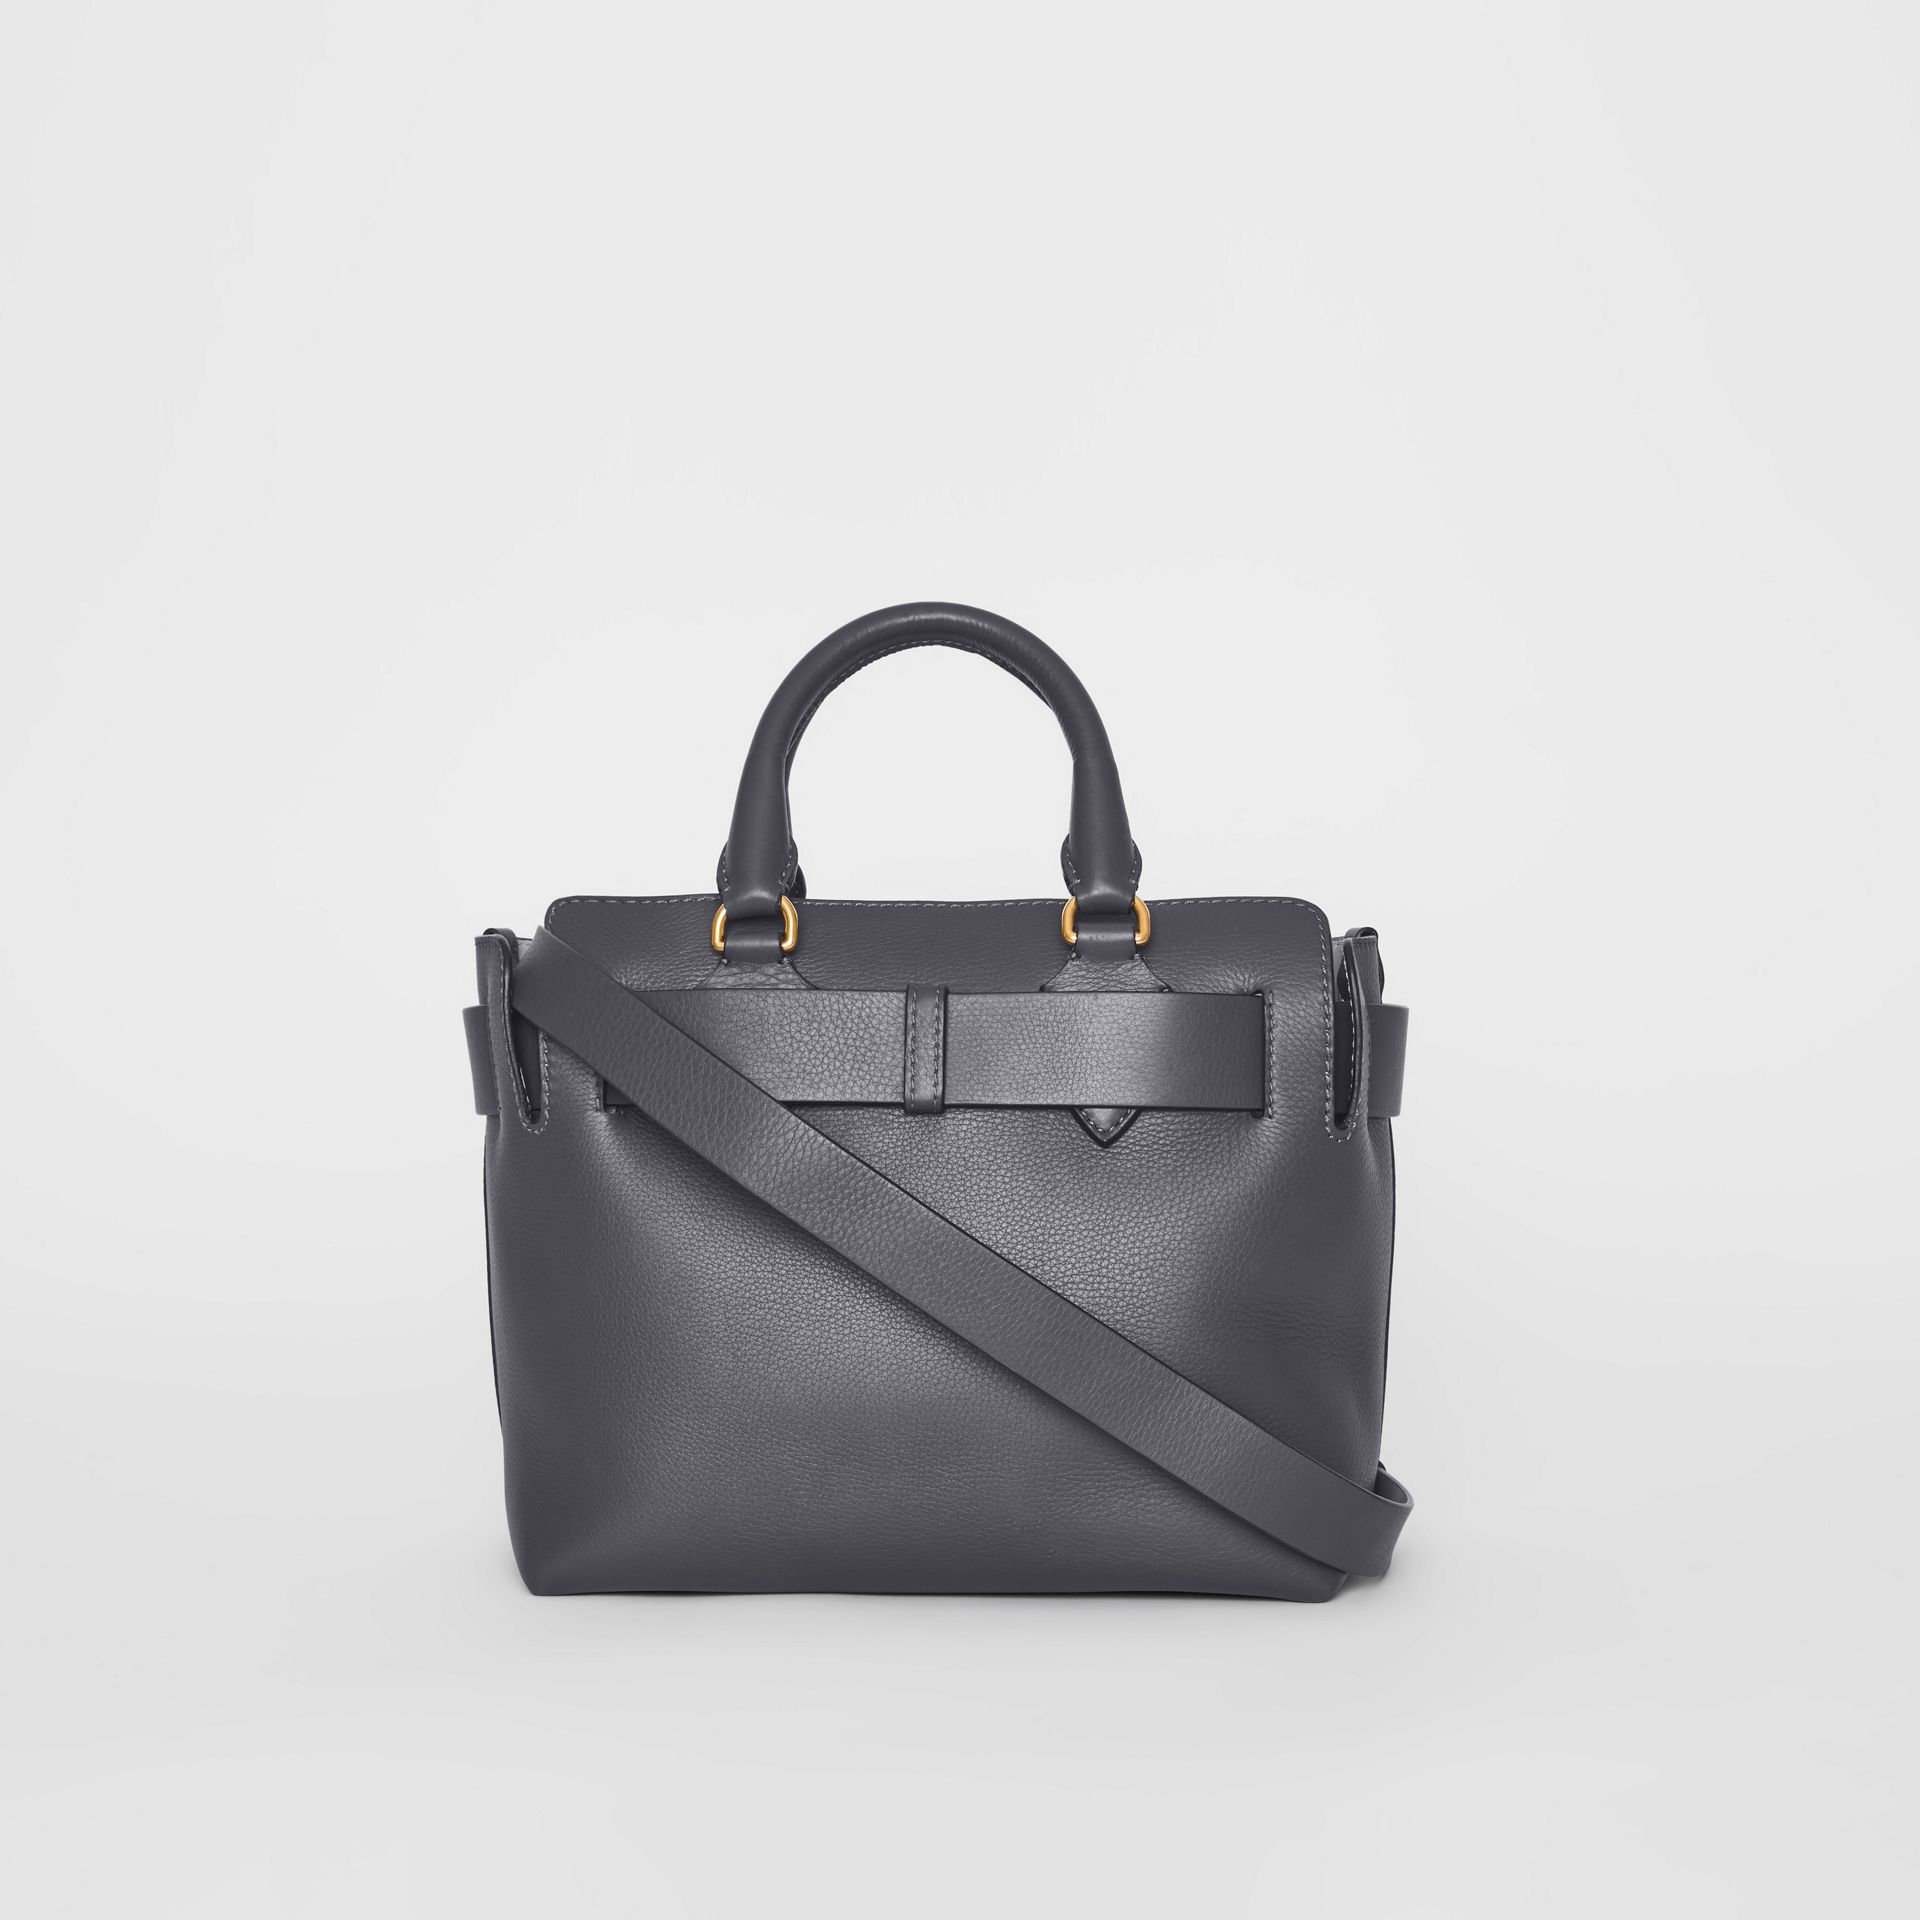 Petit sac The Belt en cuir (Gris Anthracite) - Femme | Burberry - photo de la galerie 6